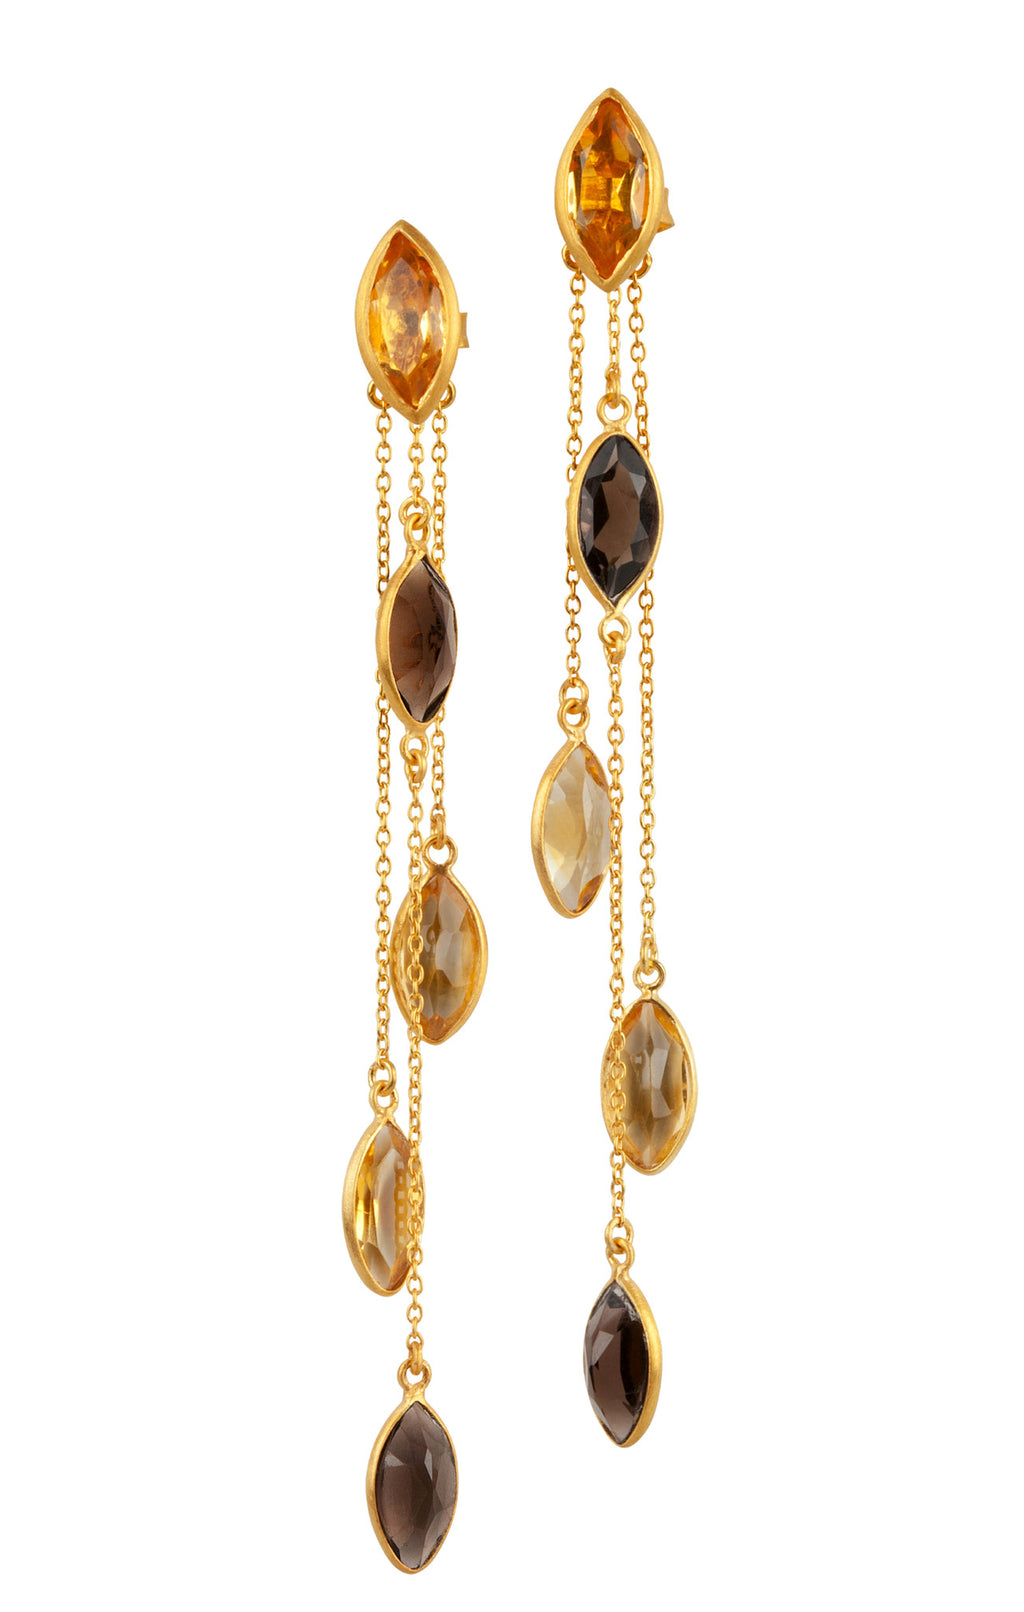 Citrine and Quartz Gold Dangles